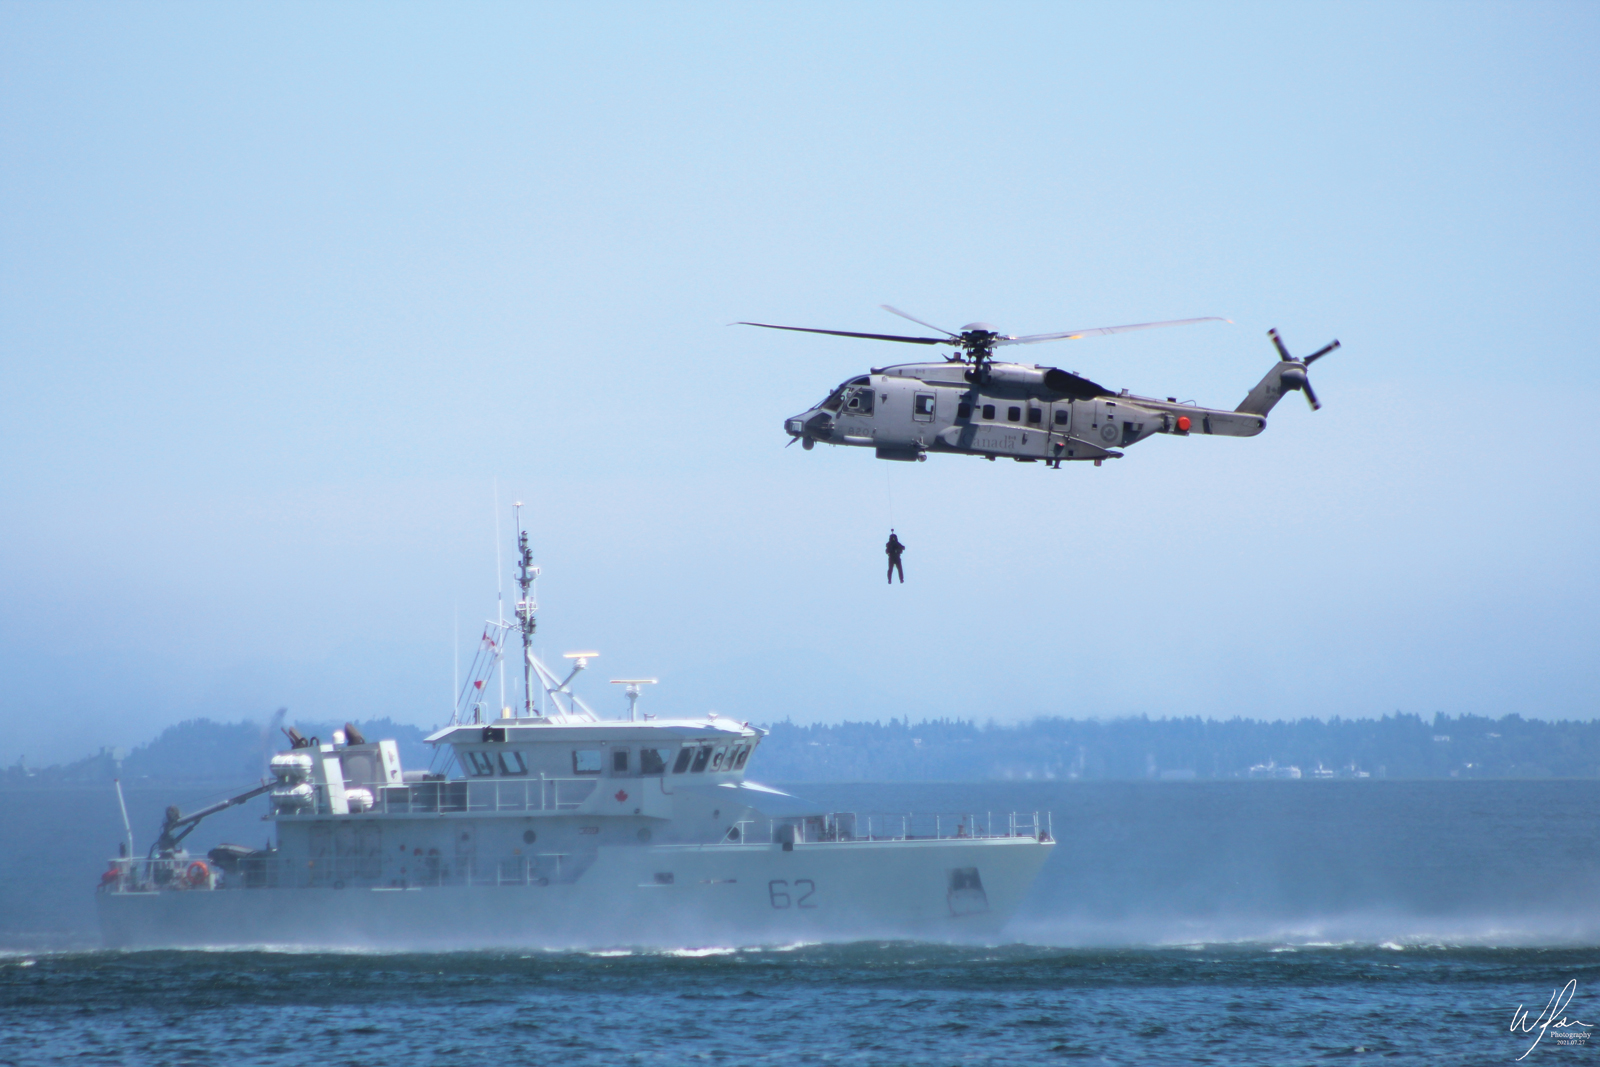 A Cyclone helicopter exercised with the Orcas, doing helo hoists. Photo by SLt Wilson Ho